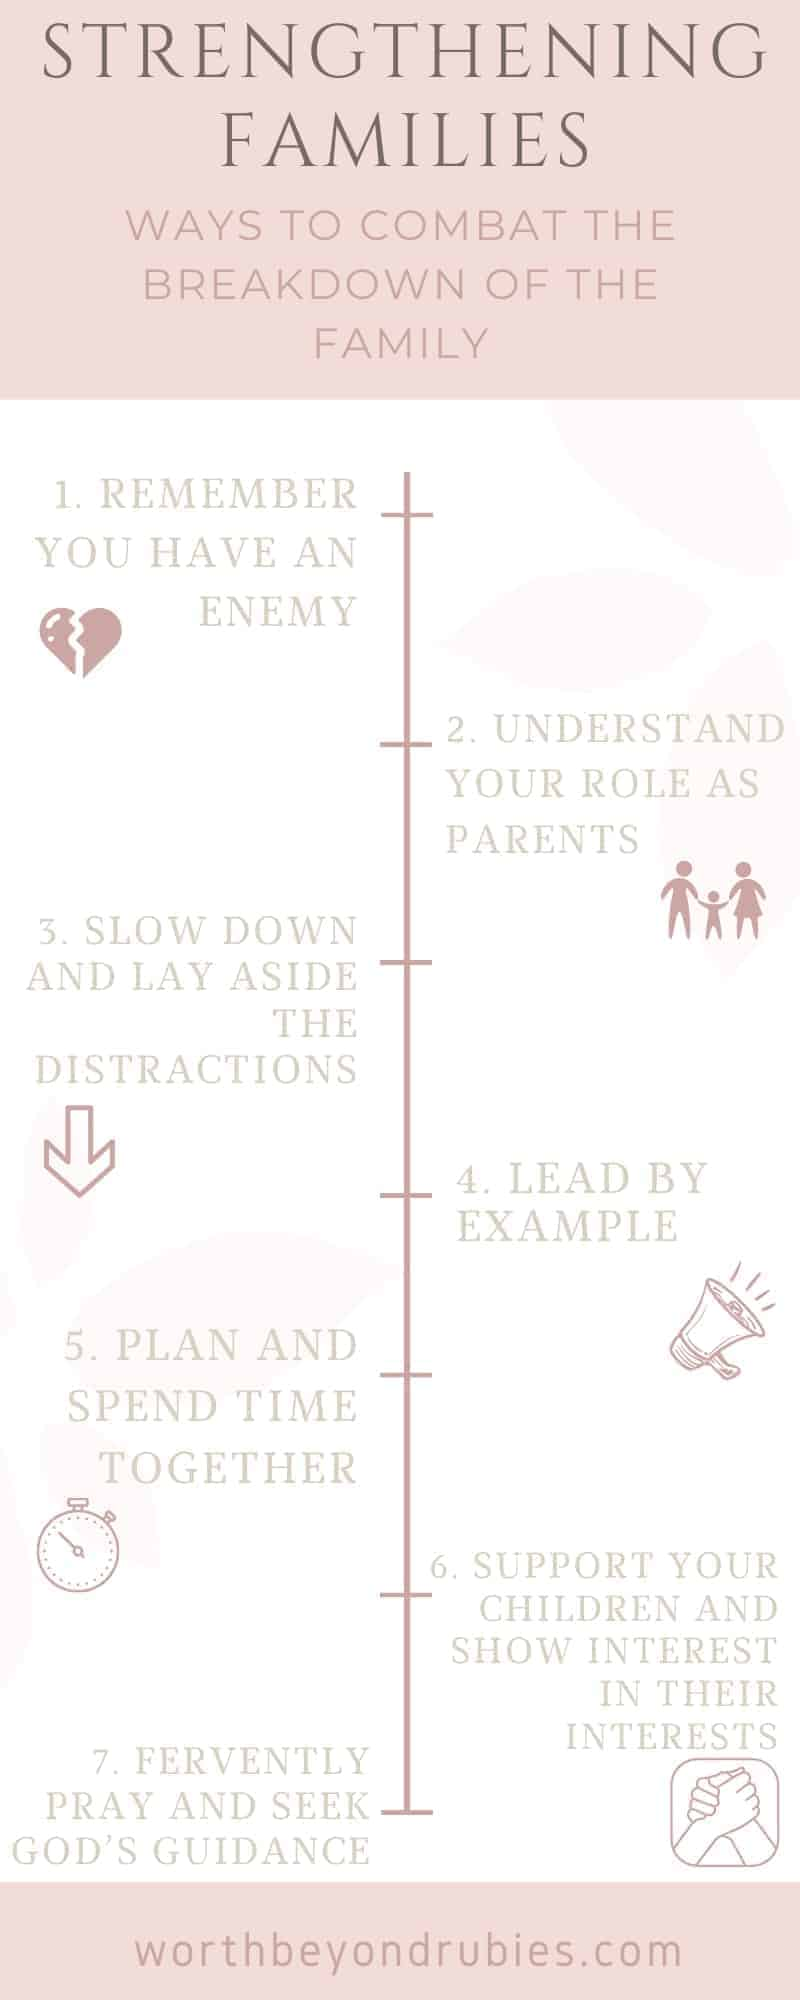 An infographic with 7 Ways to Strengthen the Family from the related blog post Strengthening Families